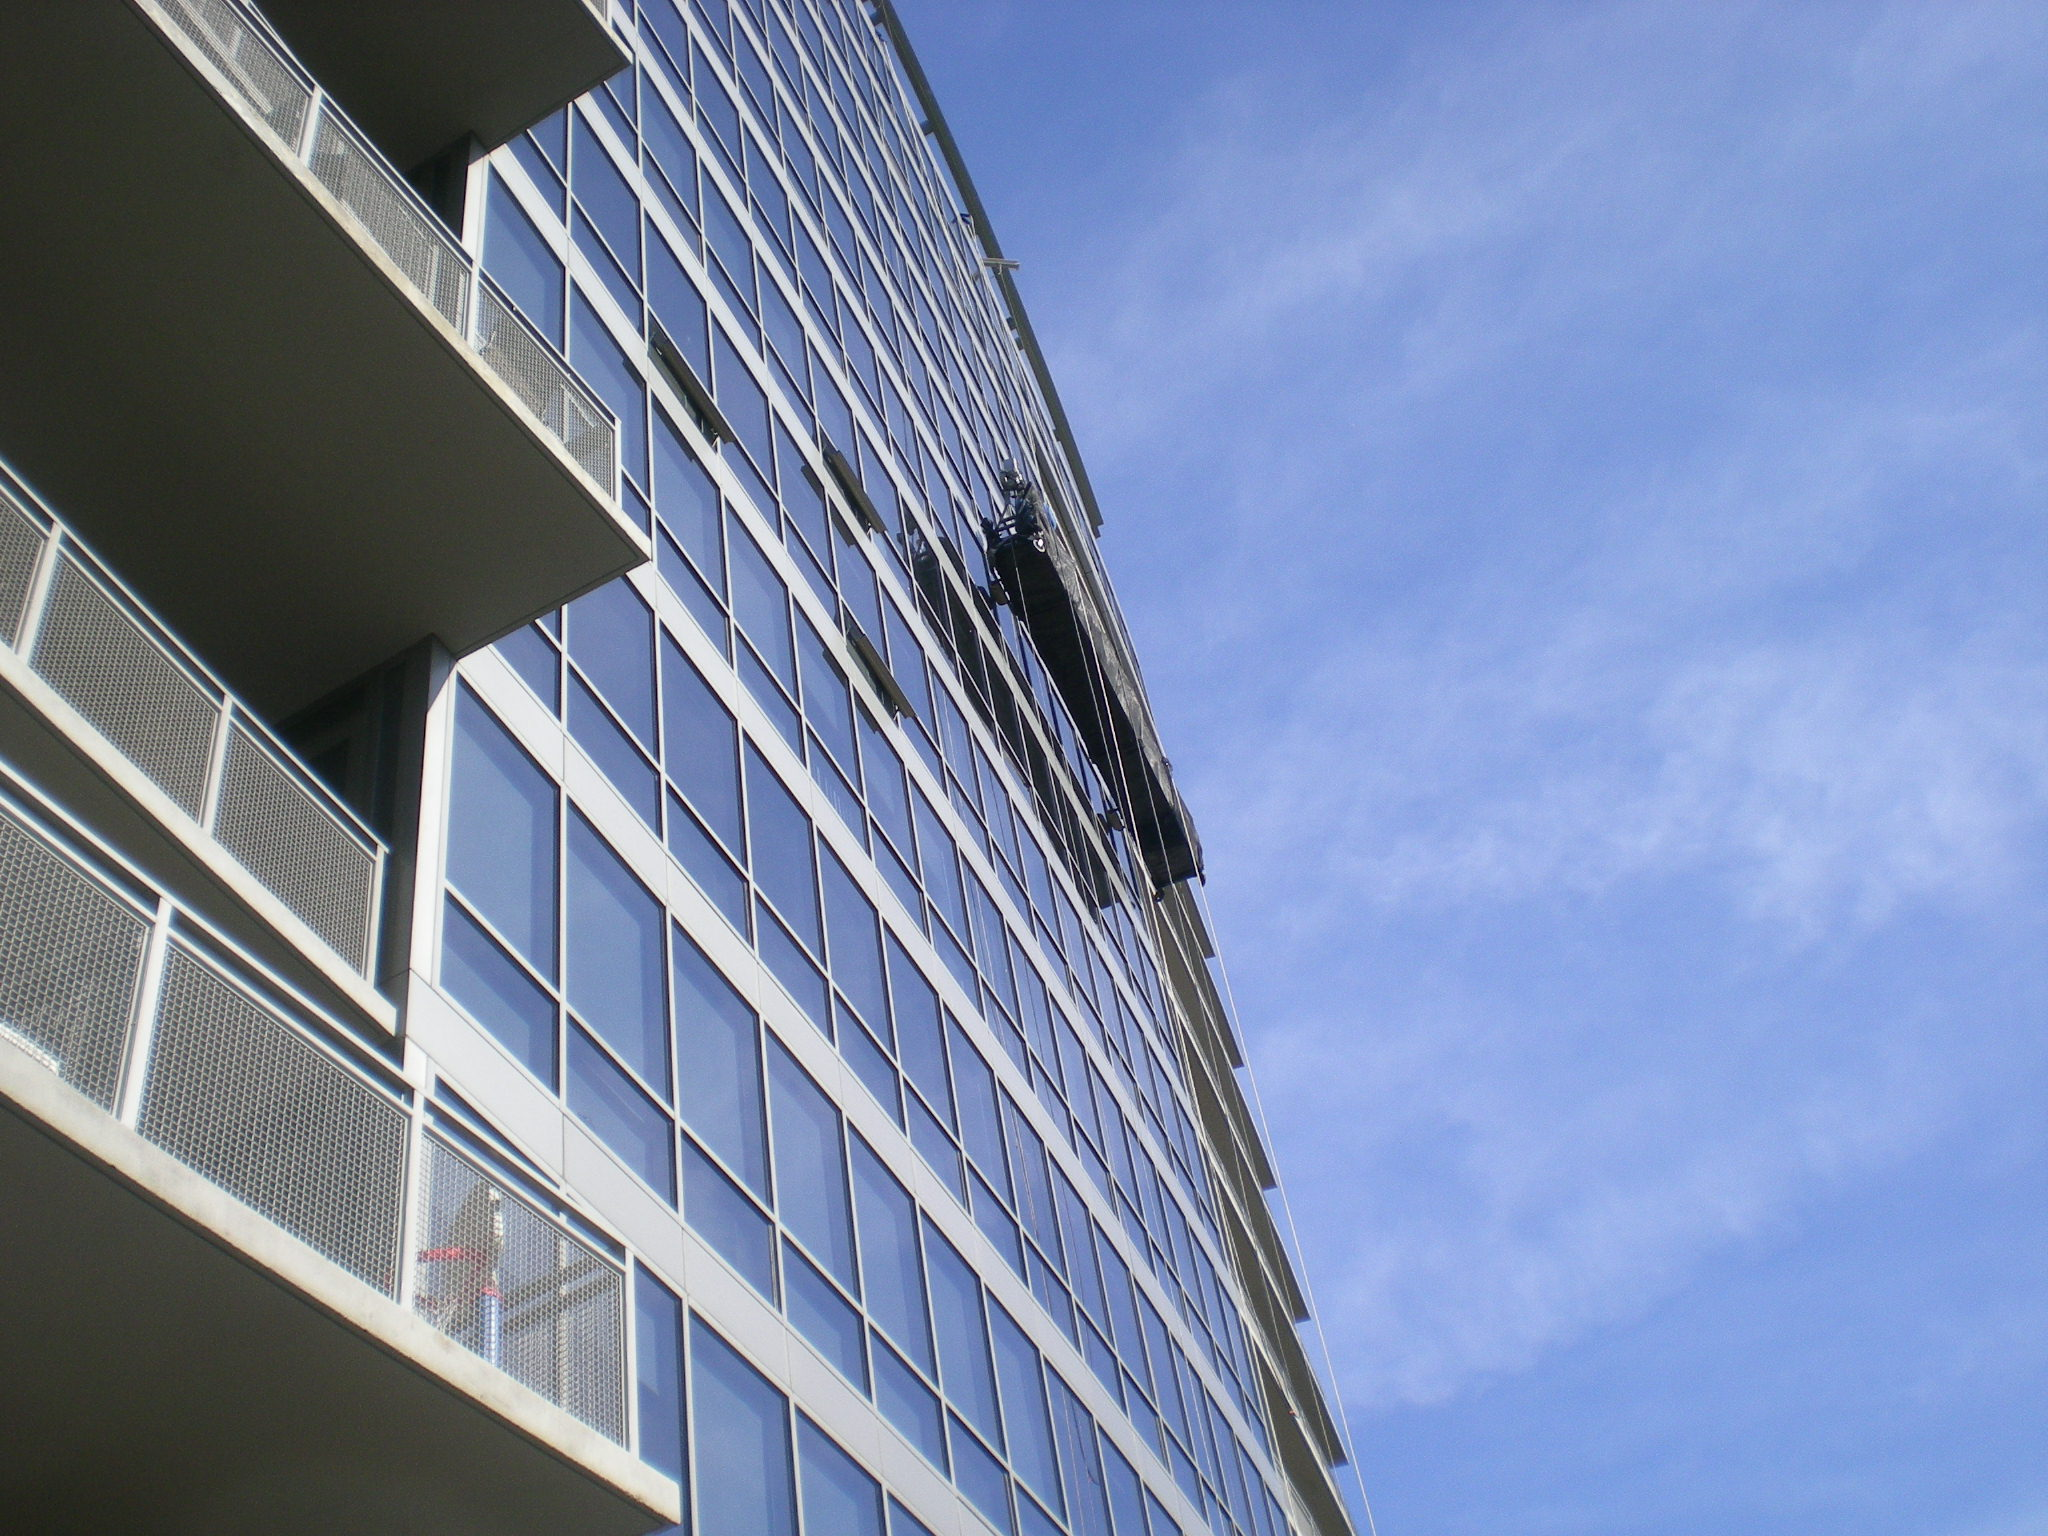 One of several swing-stage drops done on the building facade